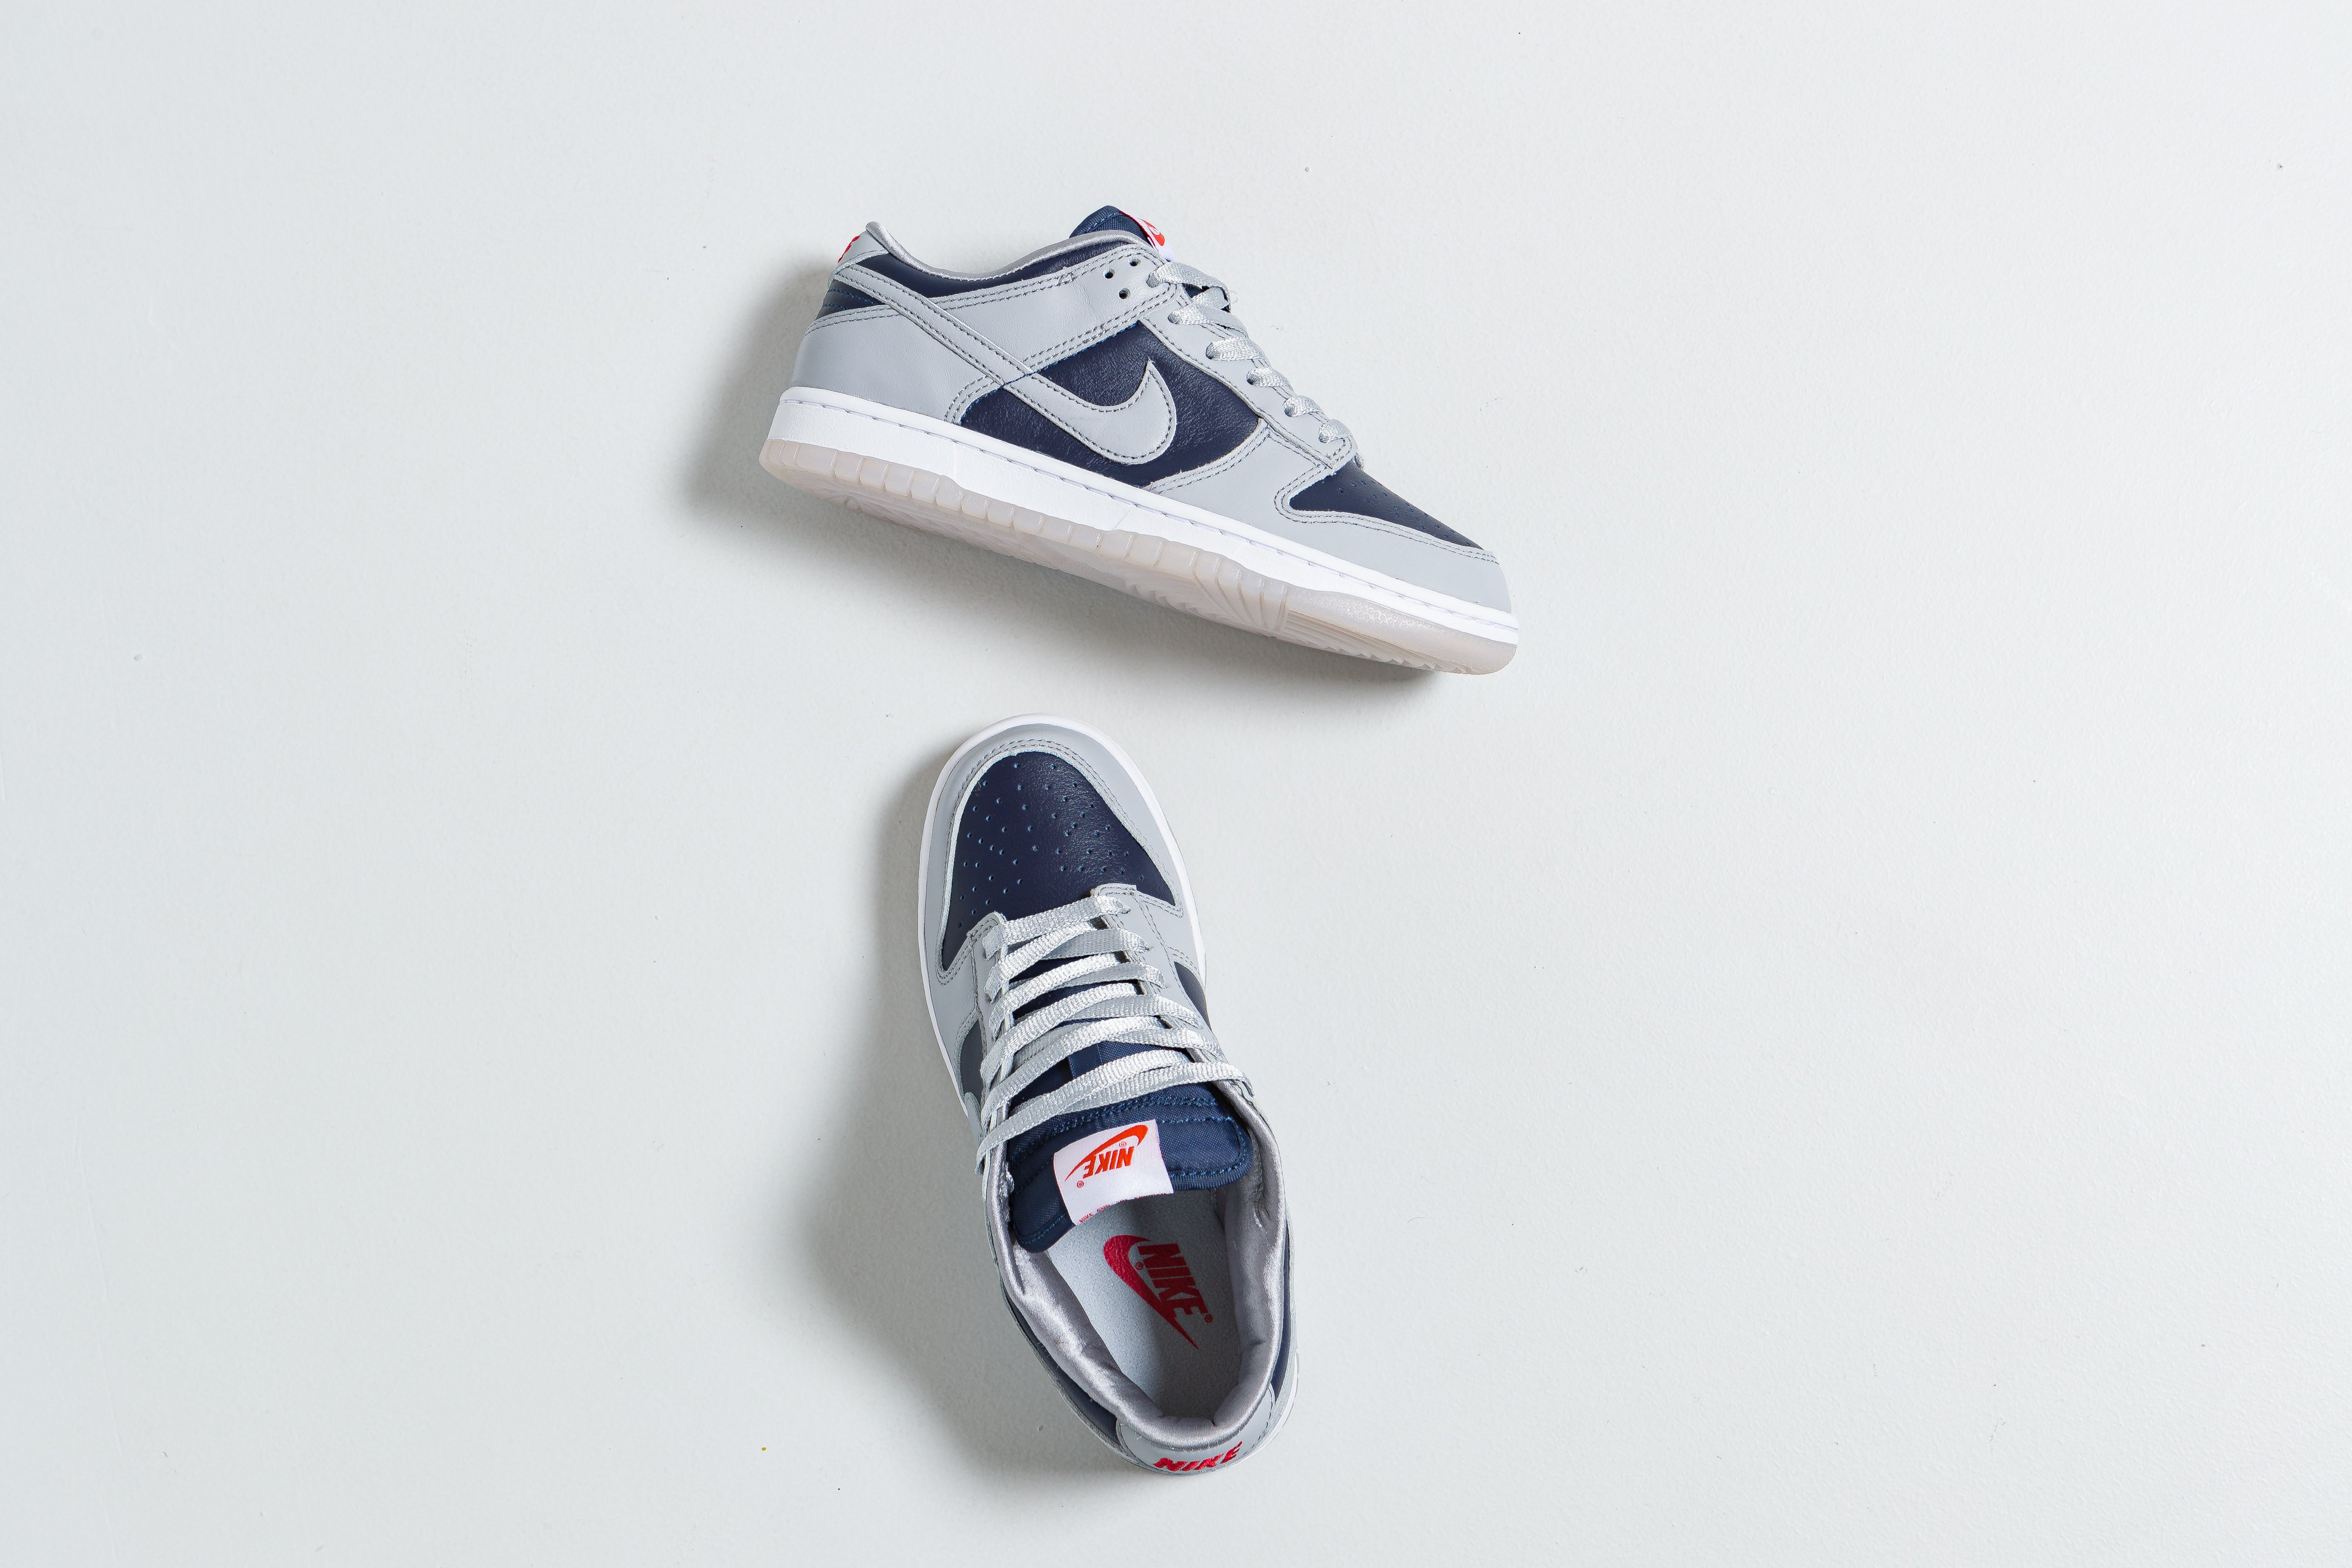 Up There Launches - Nike Women's Dunk Low SP 'College Navy'